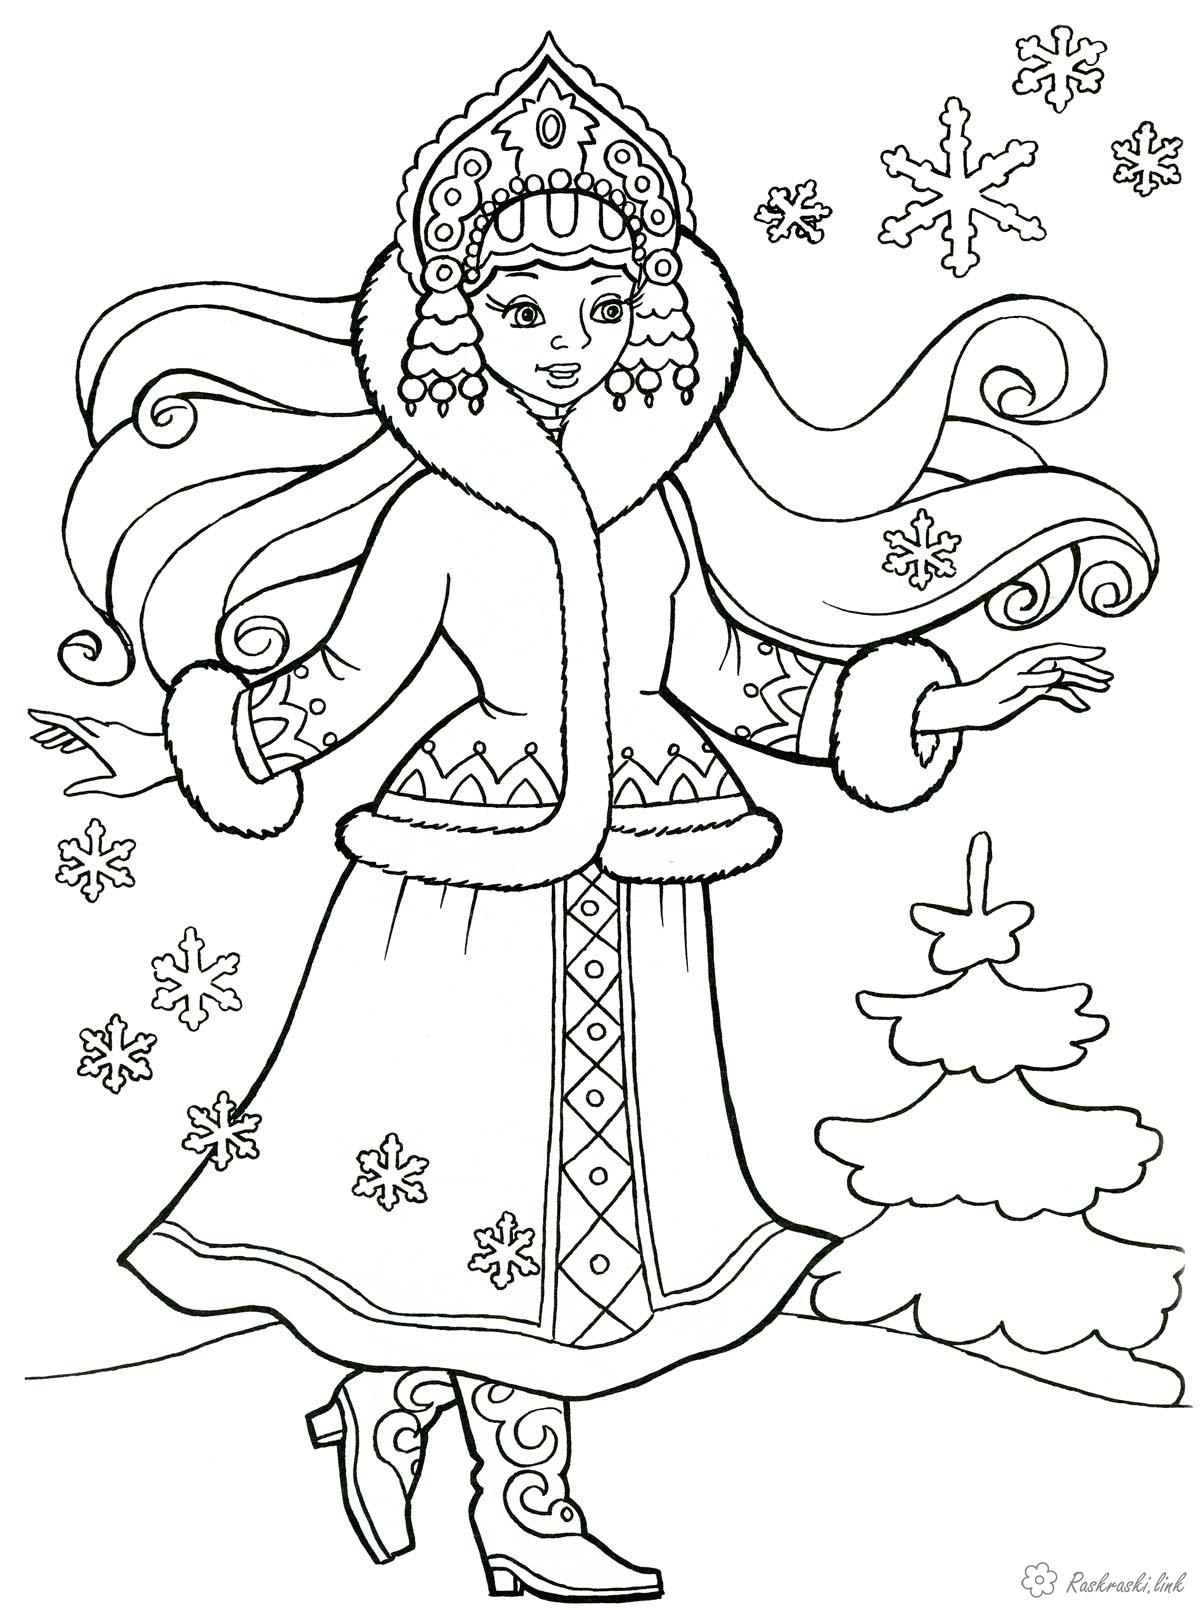 Coloring National costumes peoples of Russia costumes Russian girl in folk costume, coloring pages